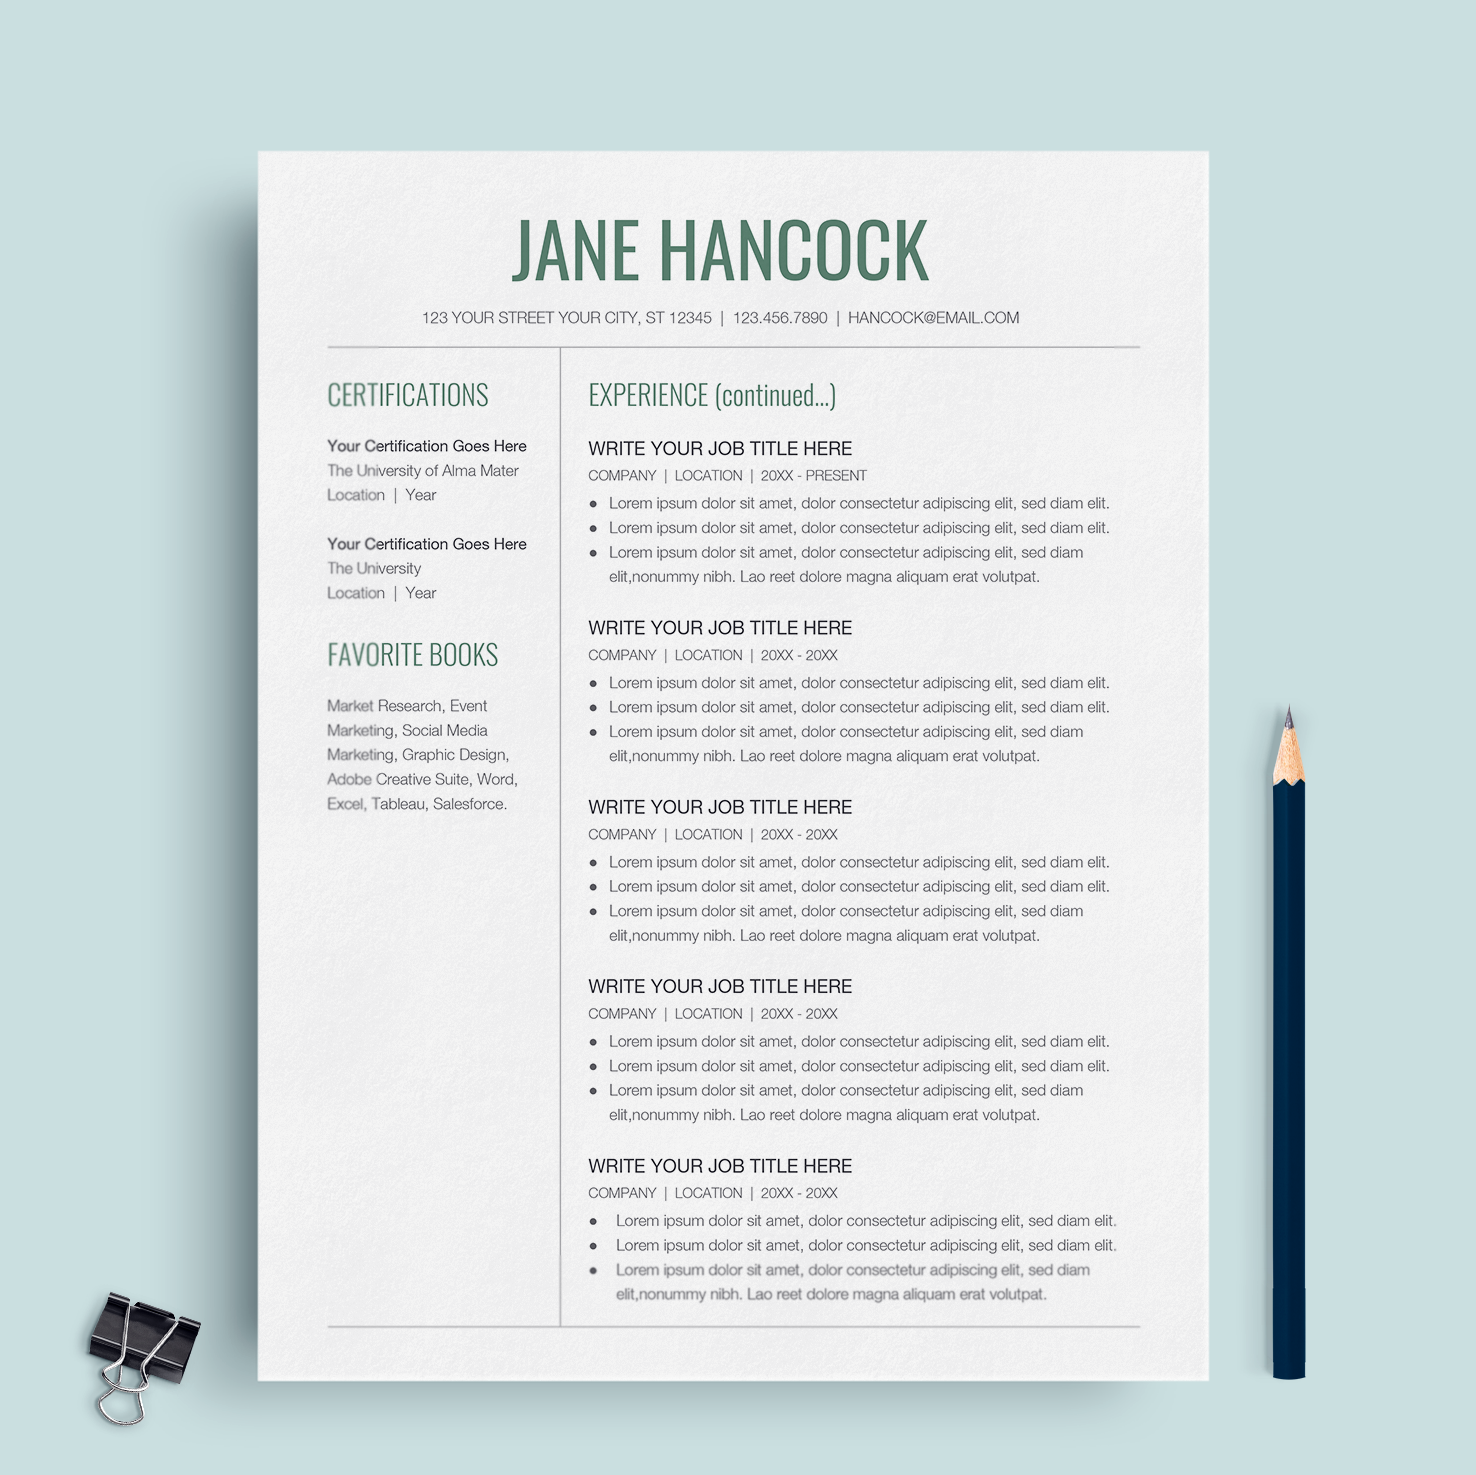 Google Doc Resume Template; Jane Hancock | Google Docs Resume Template | CV  Template ...